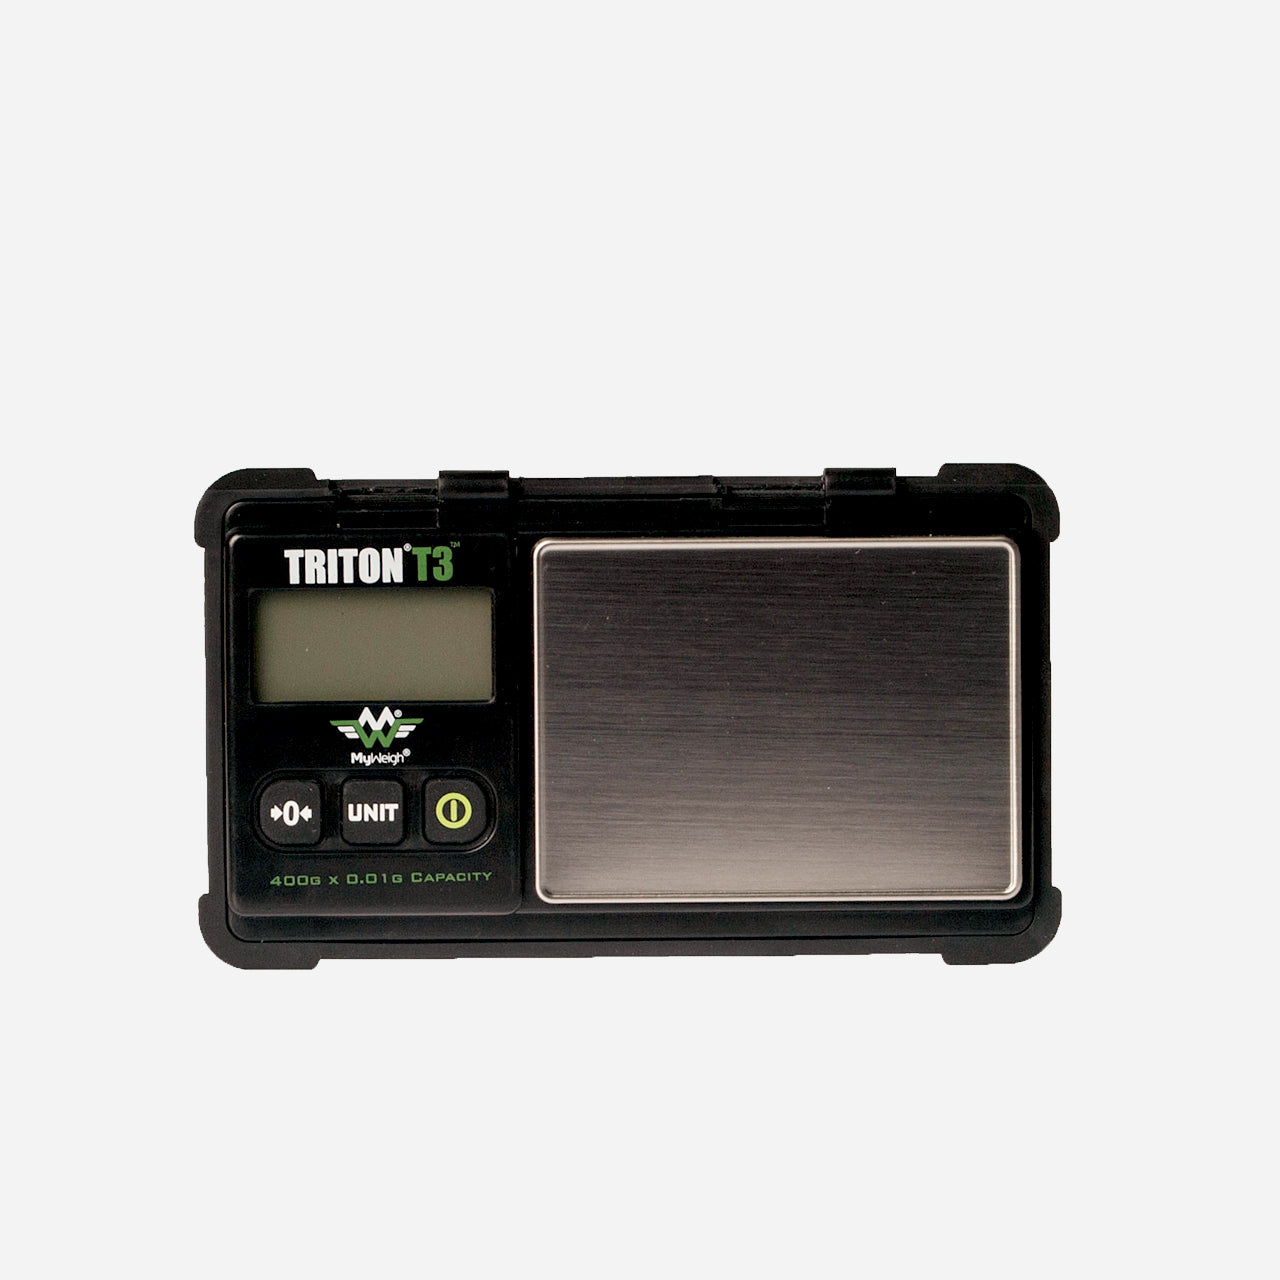 My Weigh Triton T3-400 Pocket Scale - 400g